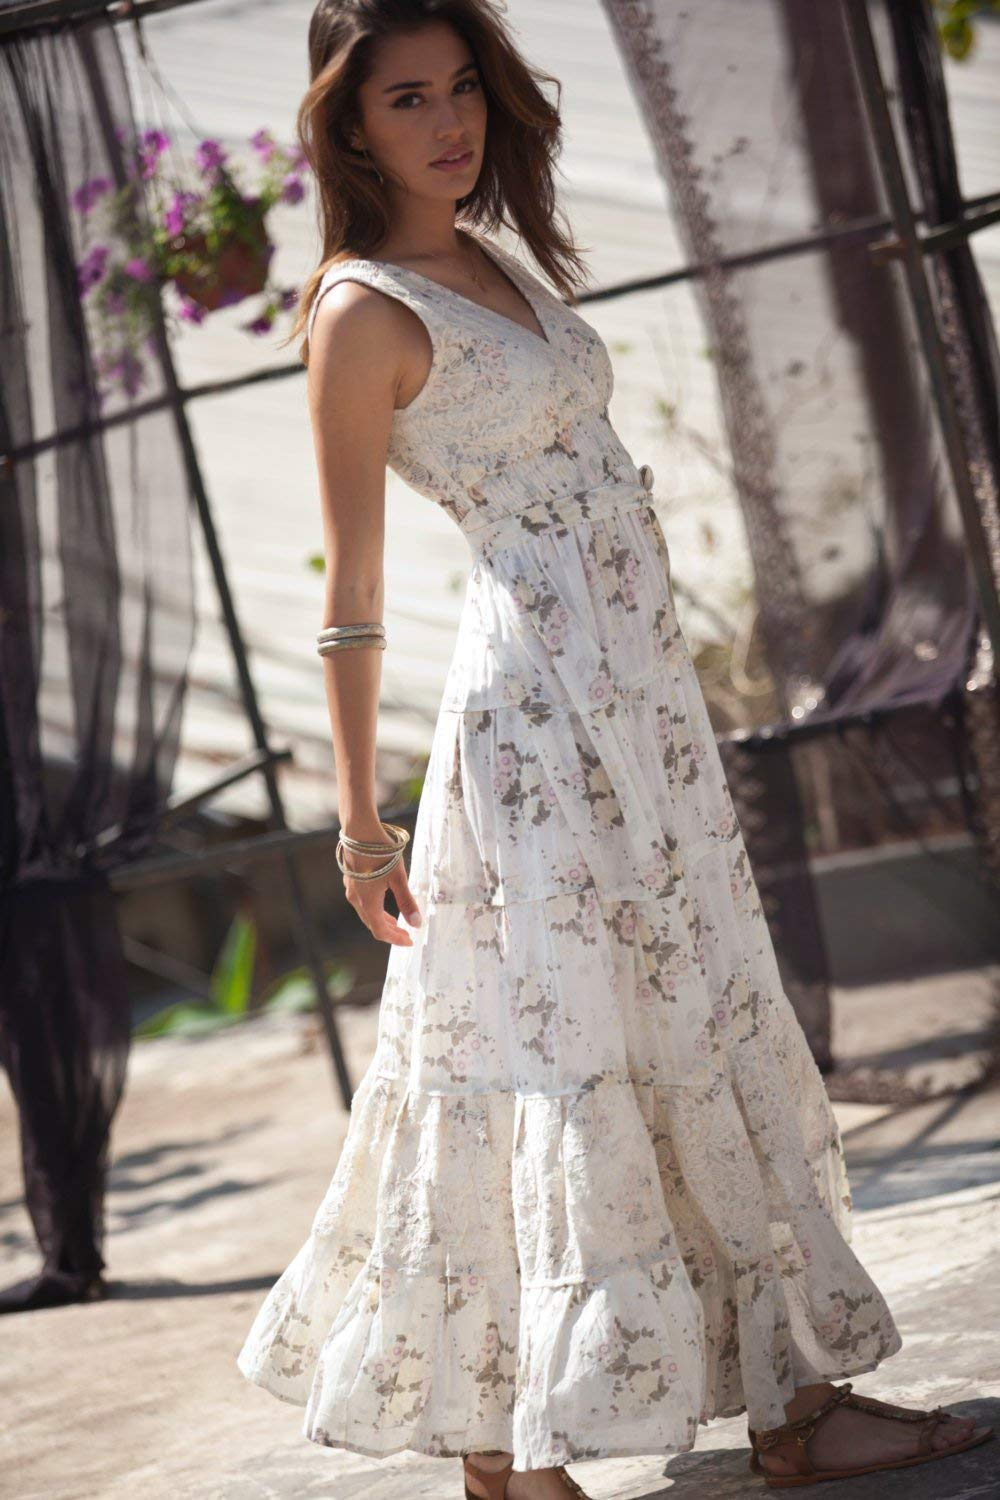 Cream Maxi Dress, Hippie Urban Evening & Day Summer Dress, Boho Unique Long Dress, Romantic Flower Cotton Maxi Dress, S - XL